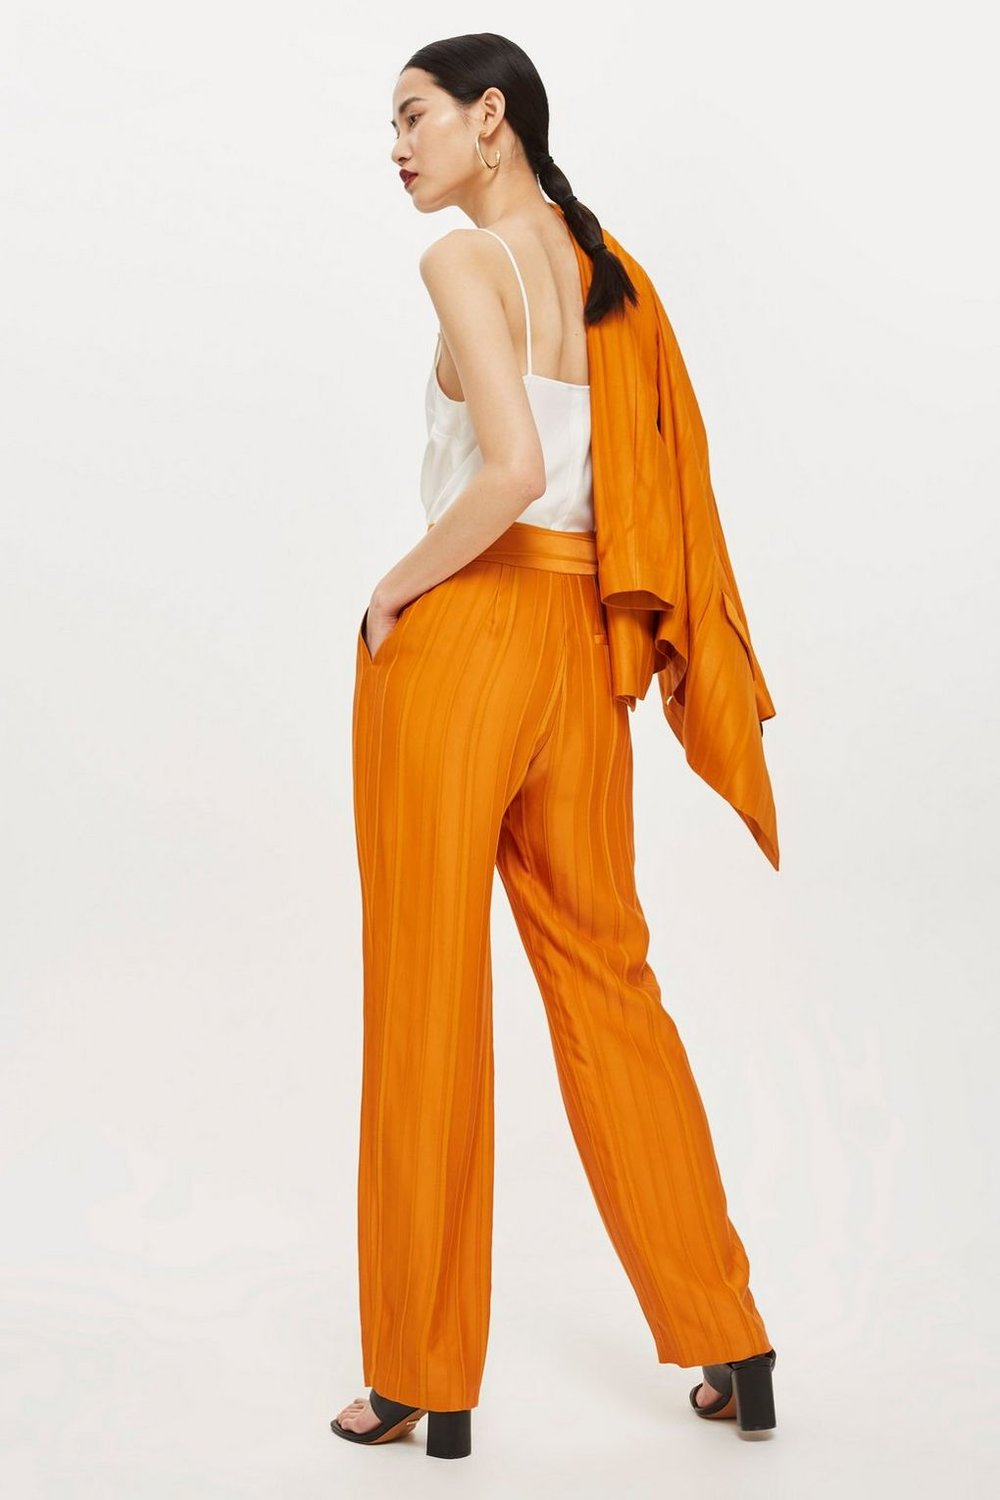 Topshop Orange trousers.jpg